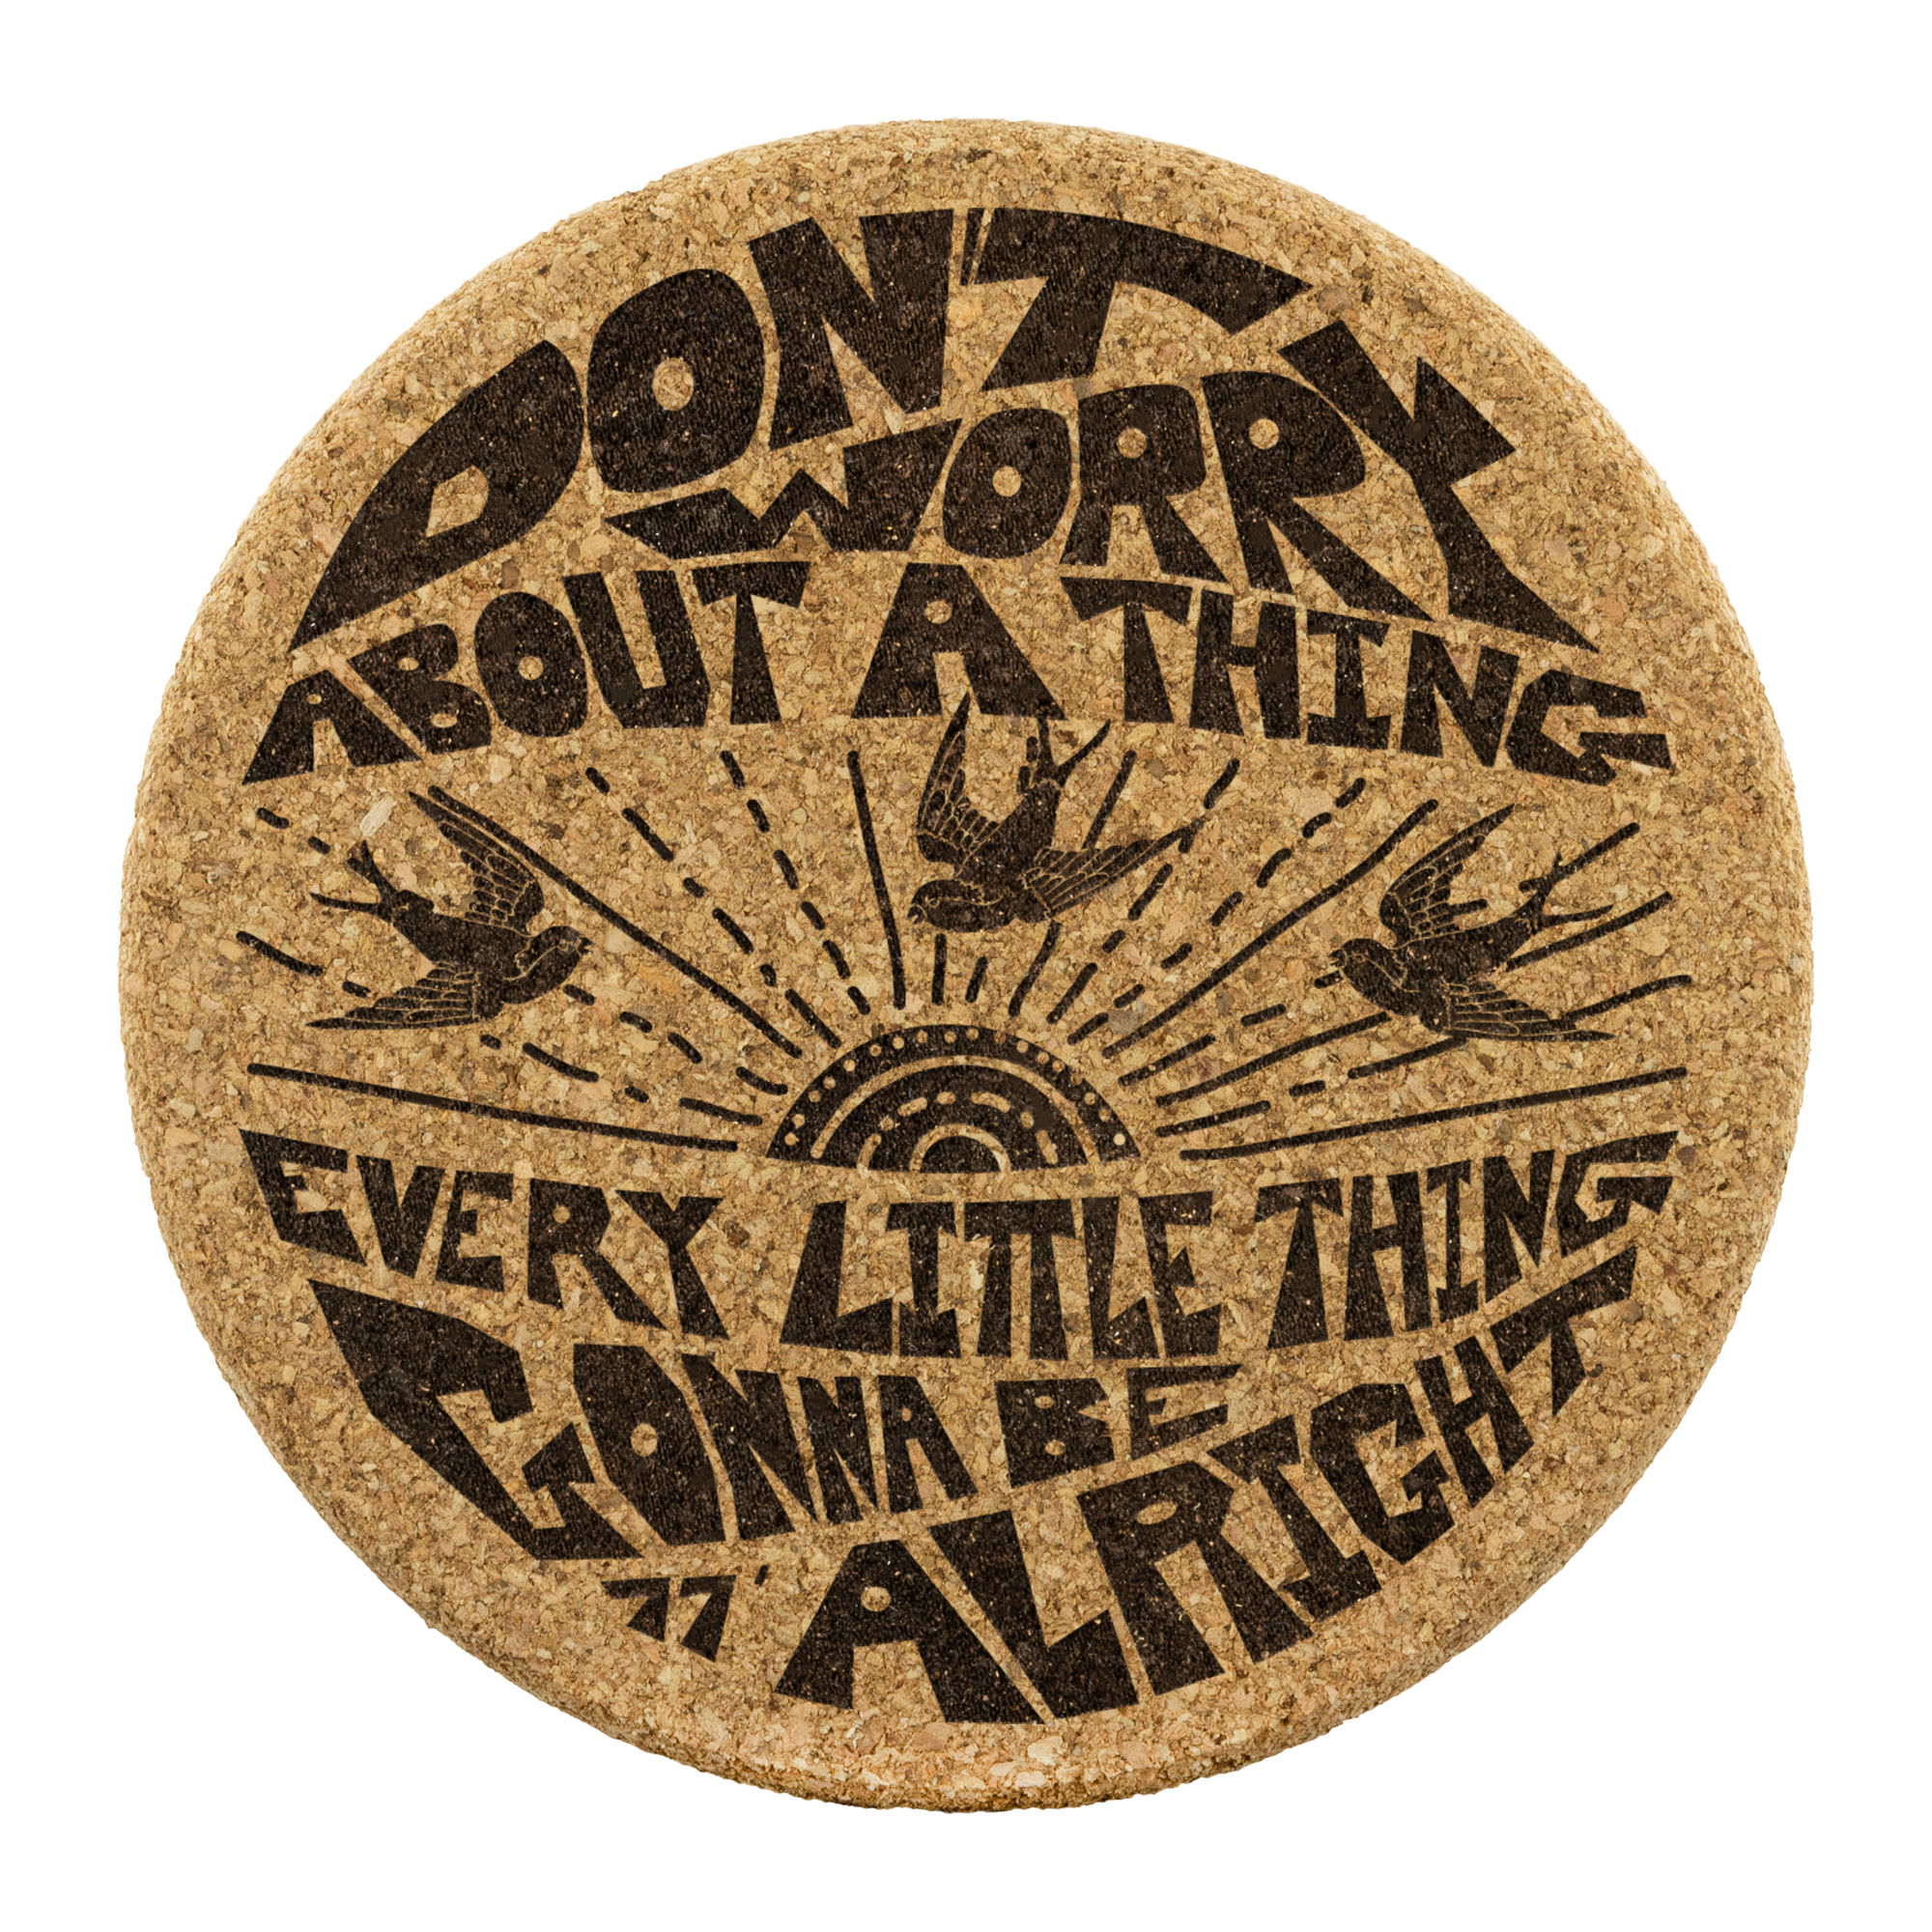 Don't Worry Premium Cork Coasters / Bob Marley, 3 Little Birds, 70's Reggae Music, Favorite Happy Song Lyrics, Zen, Peace, Love, Music Gift